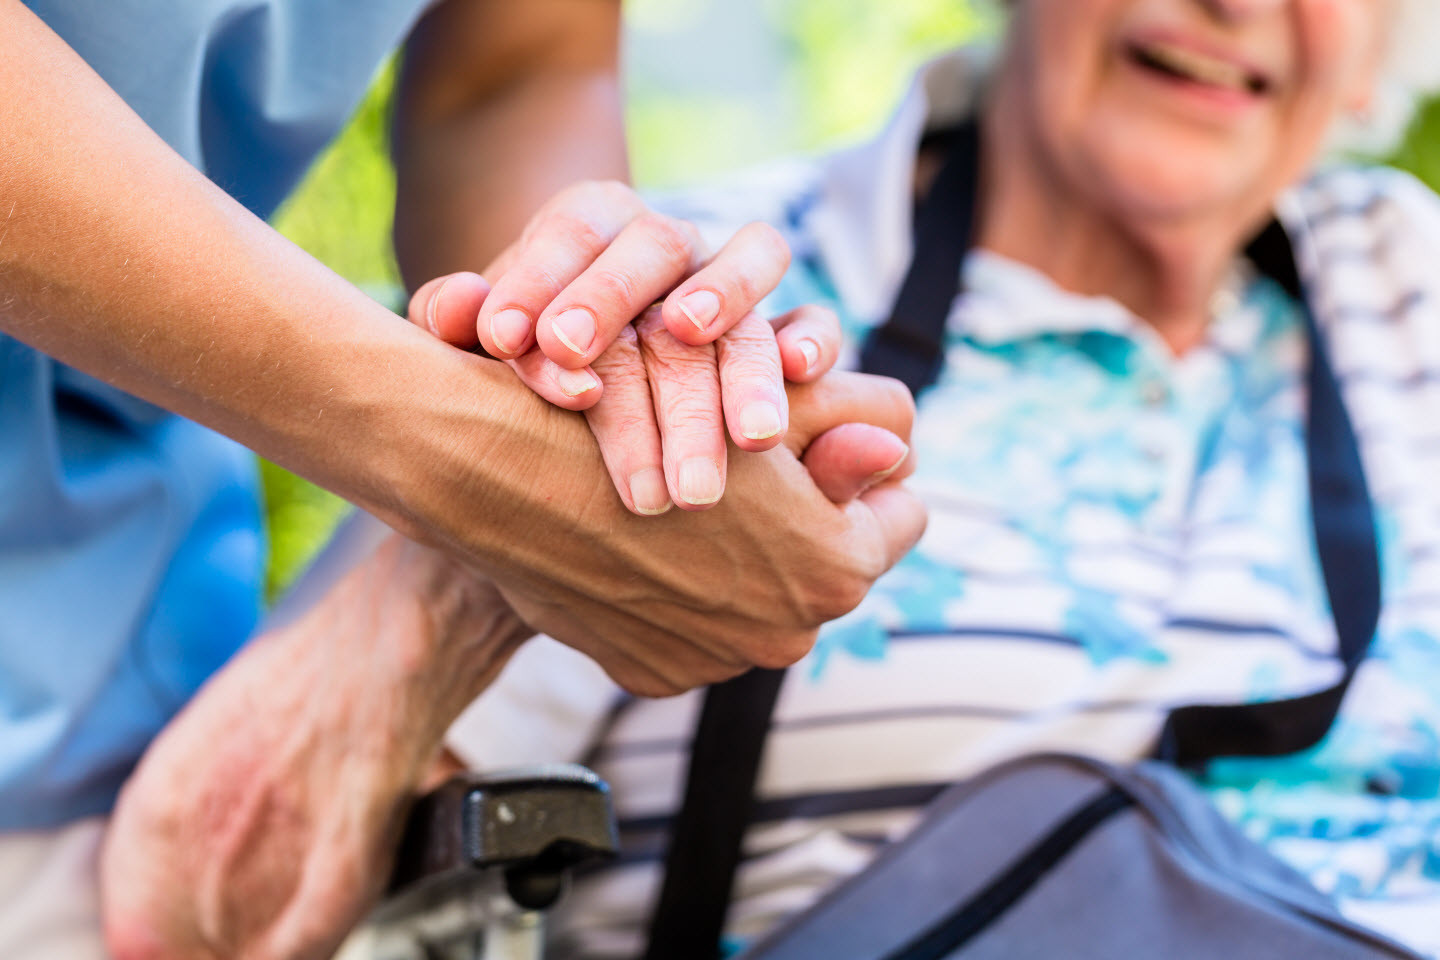 the hand of a registered nurse attendant holding the hand of a senior resident